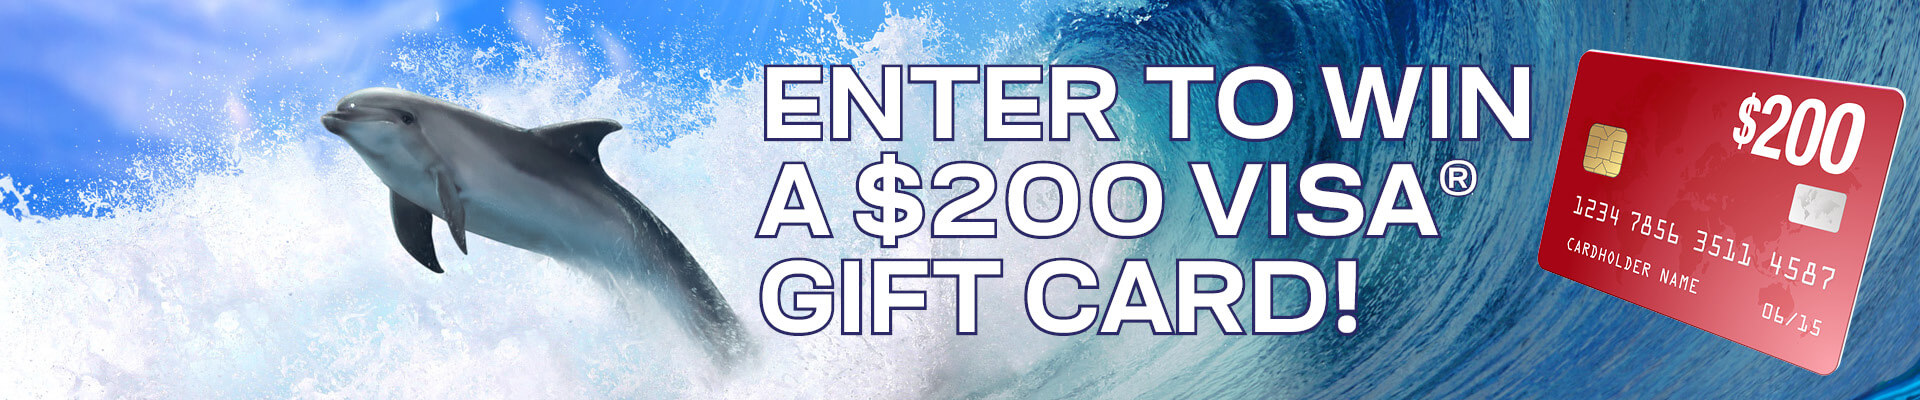 Enter to win a $200 Visa Gift Card